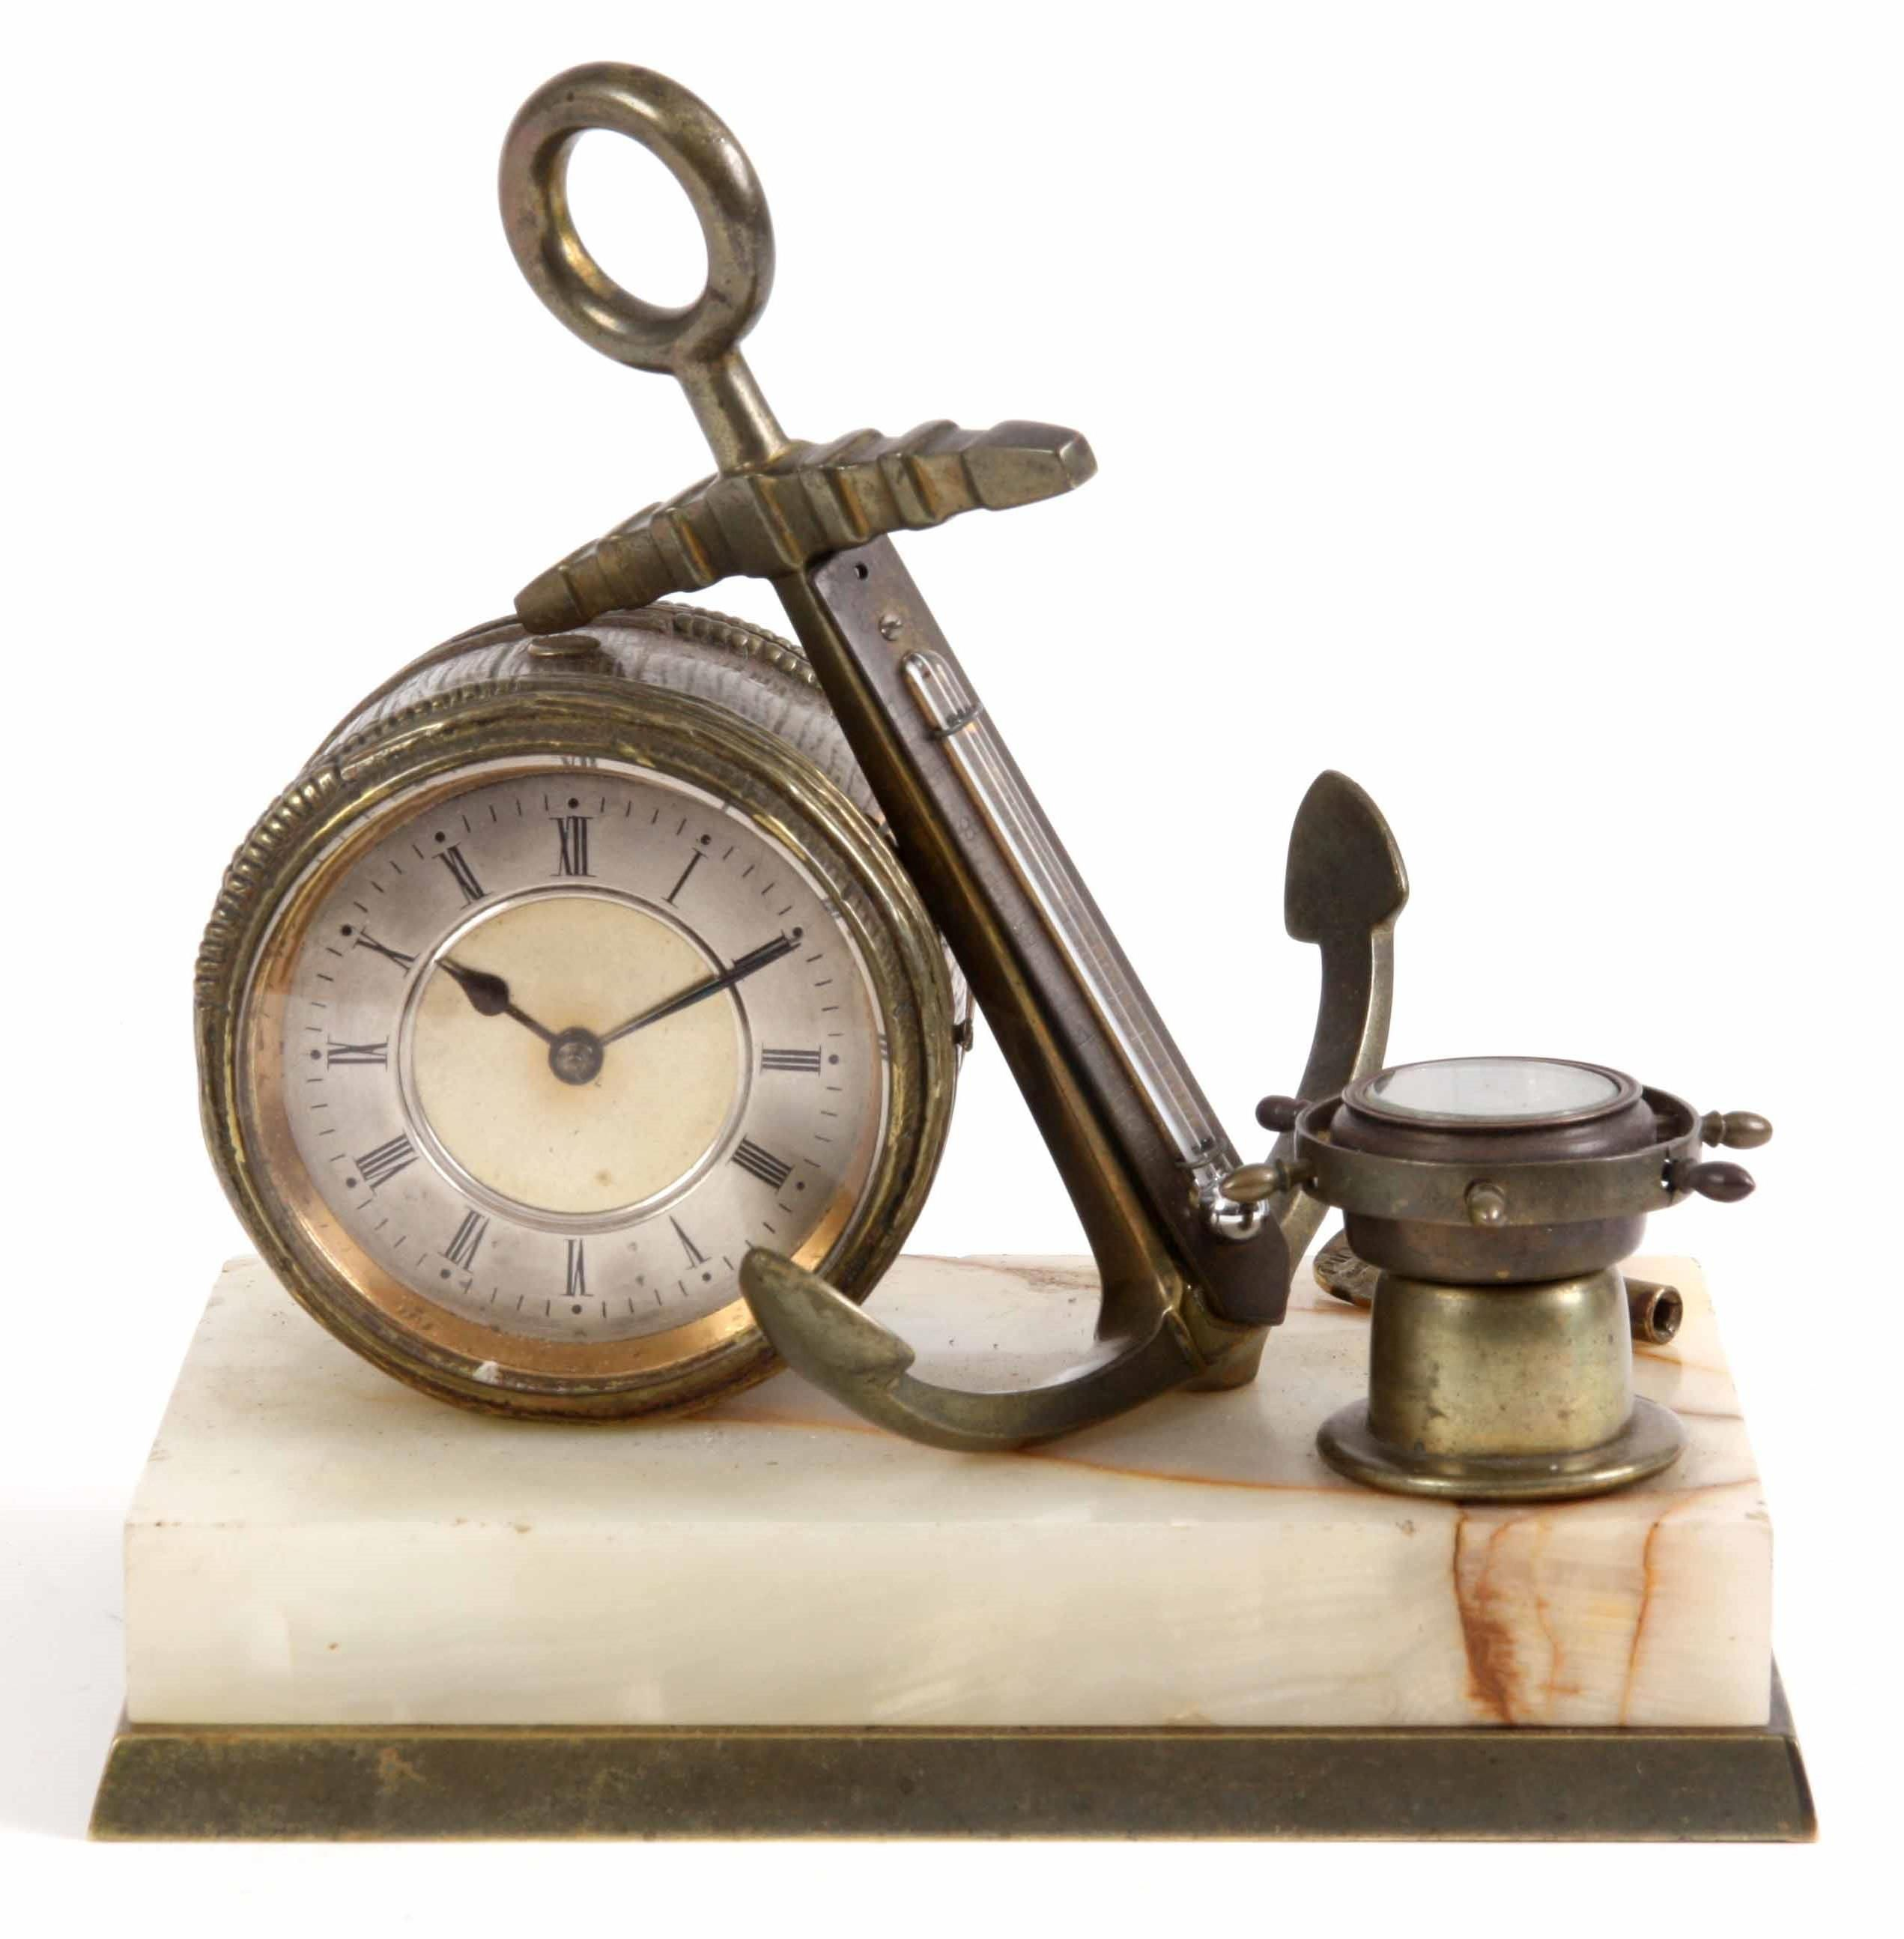 A Late 19th Century Nautical French Industrial Desk Clock Formed As A Barrel Enclosing A 2 5 Sil Desk Clock Novelty Clocks Clock